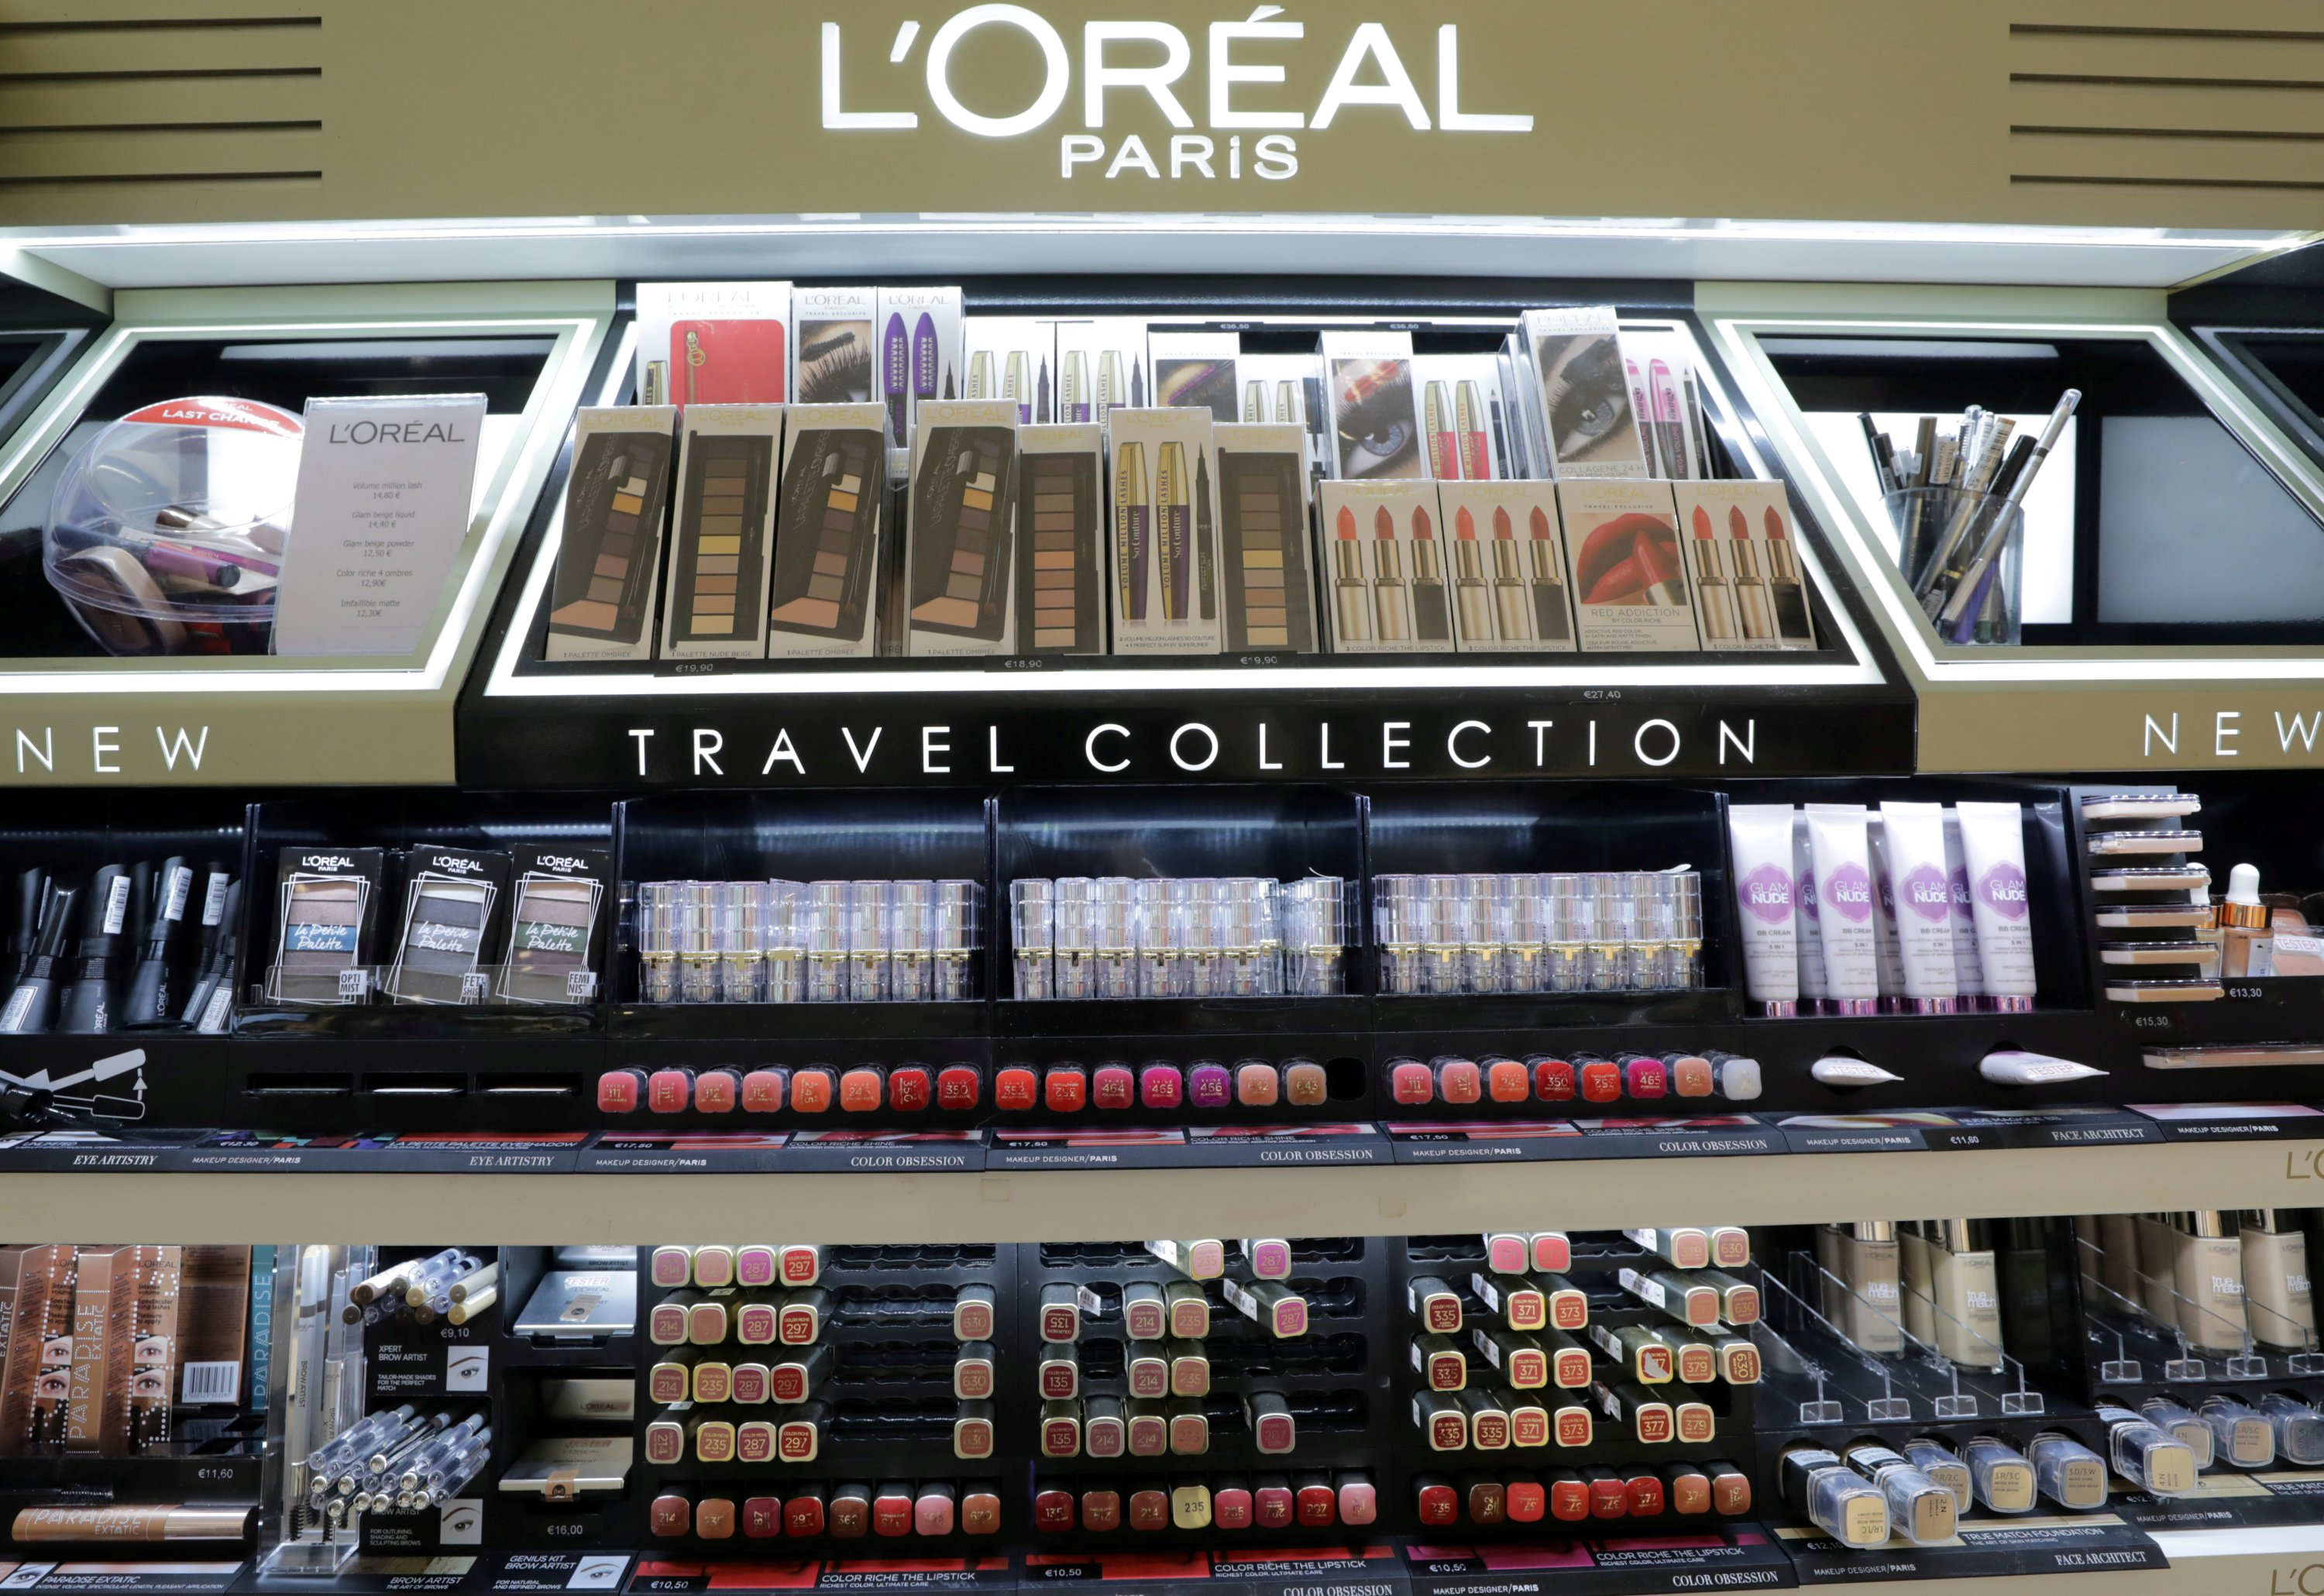 A cosmetic display of French cosmetics group L'Oreal at the Nice International Airport, in Nice, France, October 10, 2018. (REUTERS PHOTO)